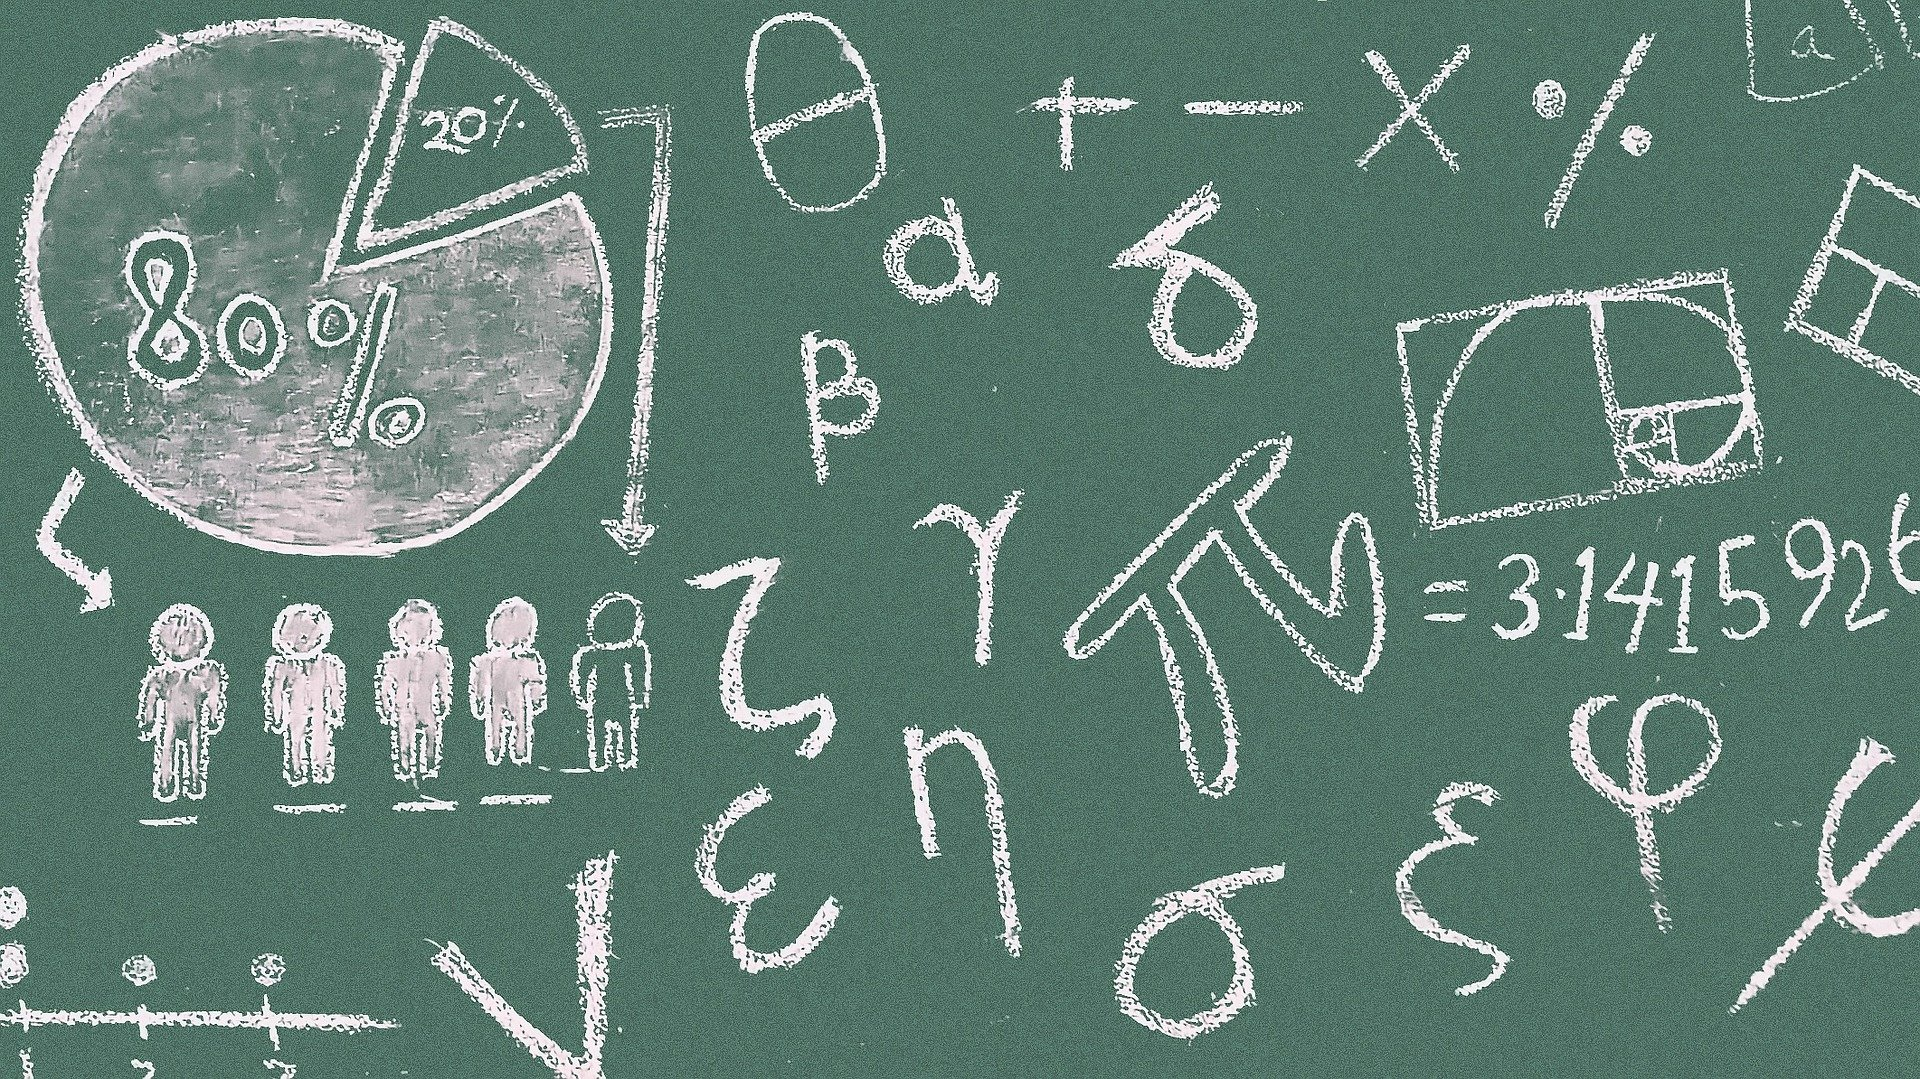 Changing students\' attitudes to mathematics improves test scores